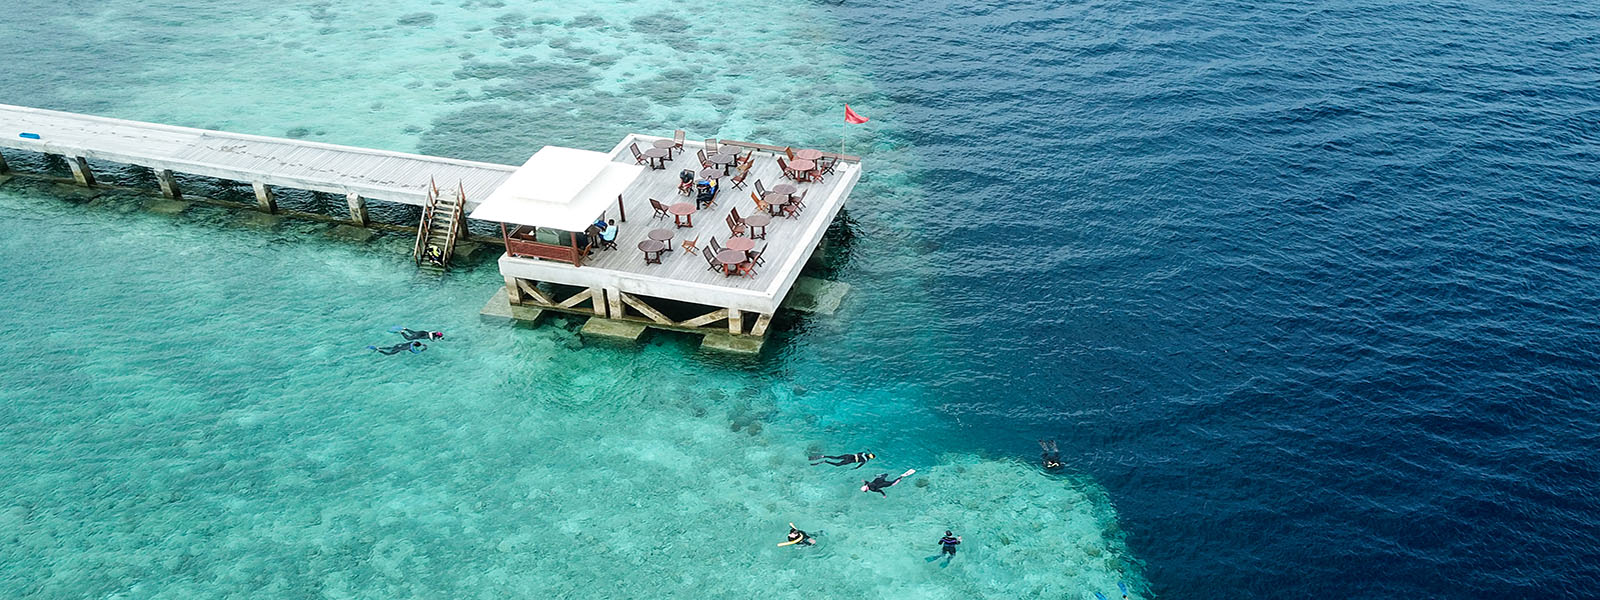 Aerial of snorkelers at wakatobi